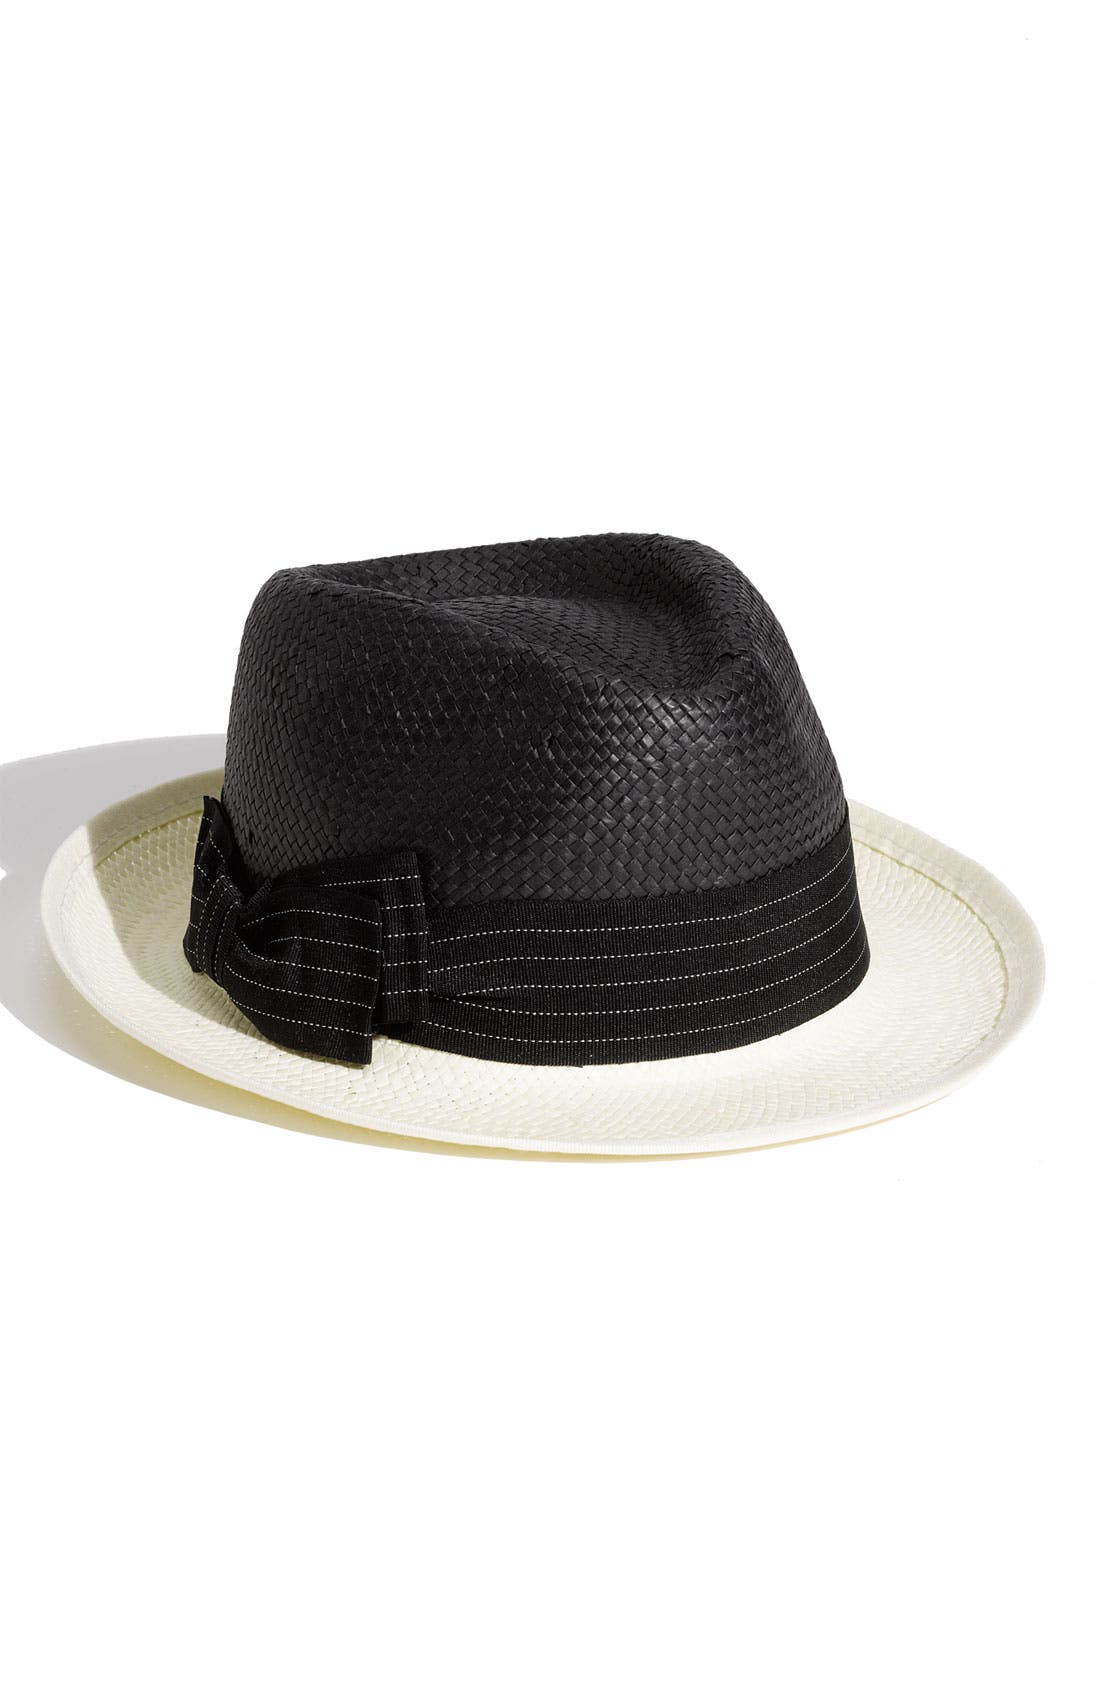 Two Tone Fedora, Main, color, 002